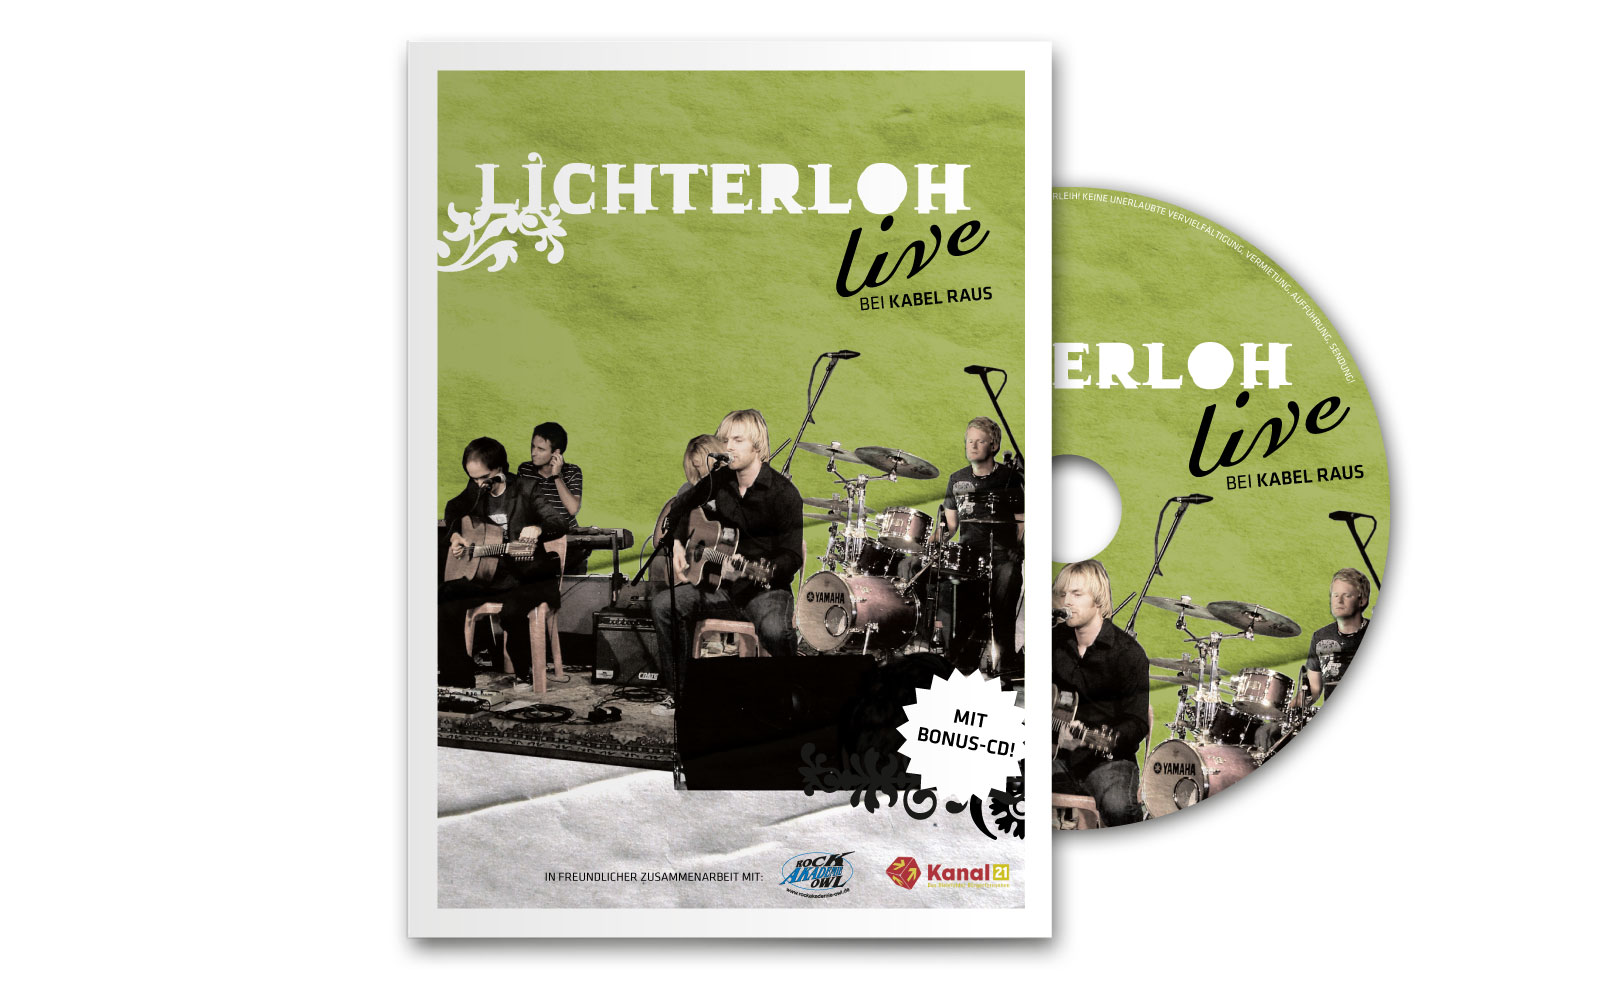 grafiksalon_cd_lichterloh_1600x1000_11